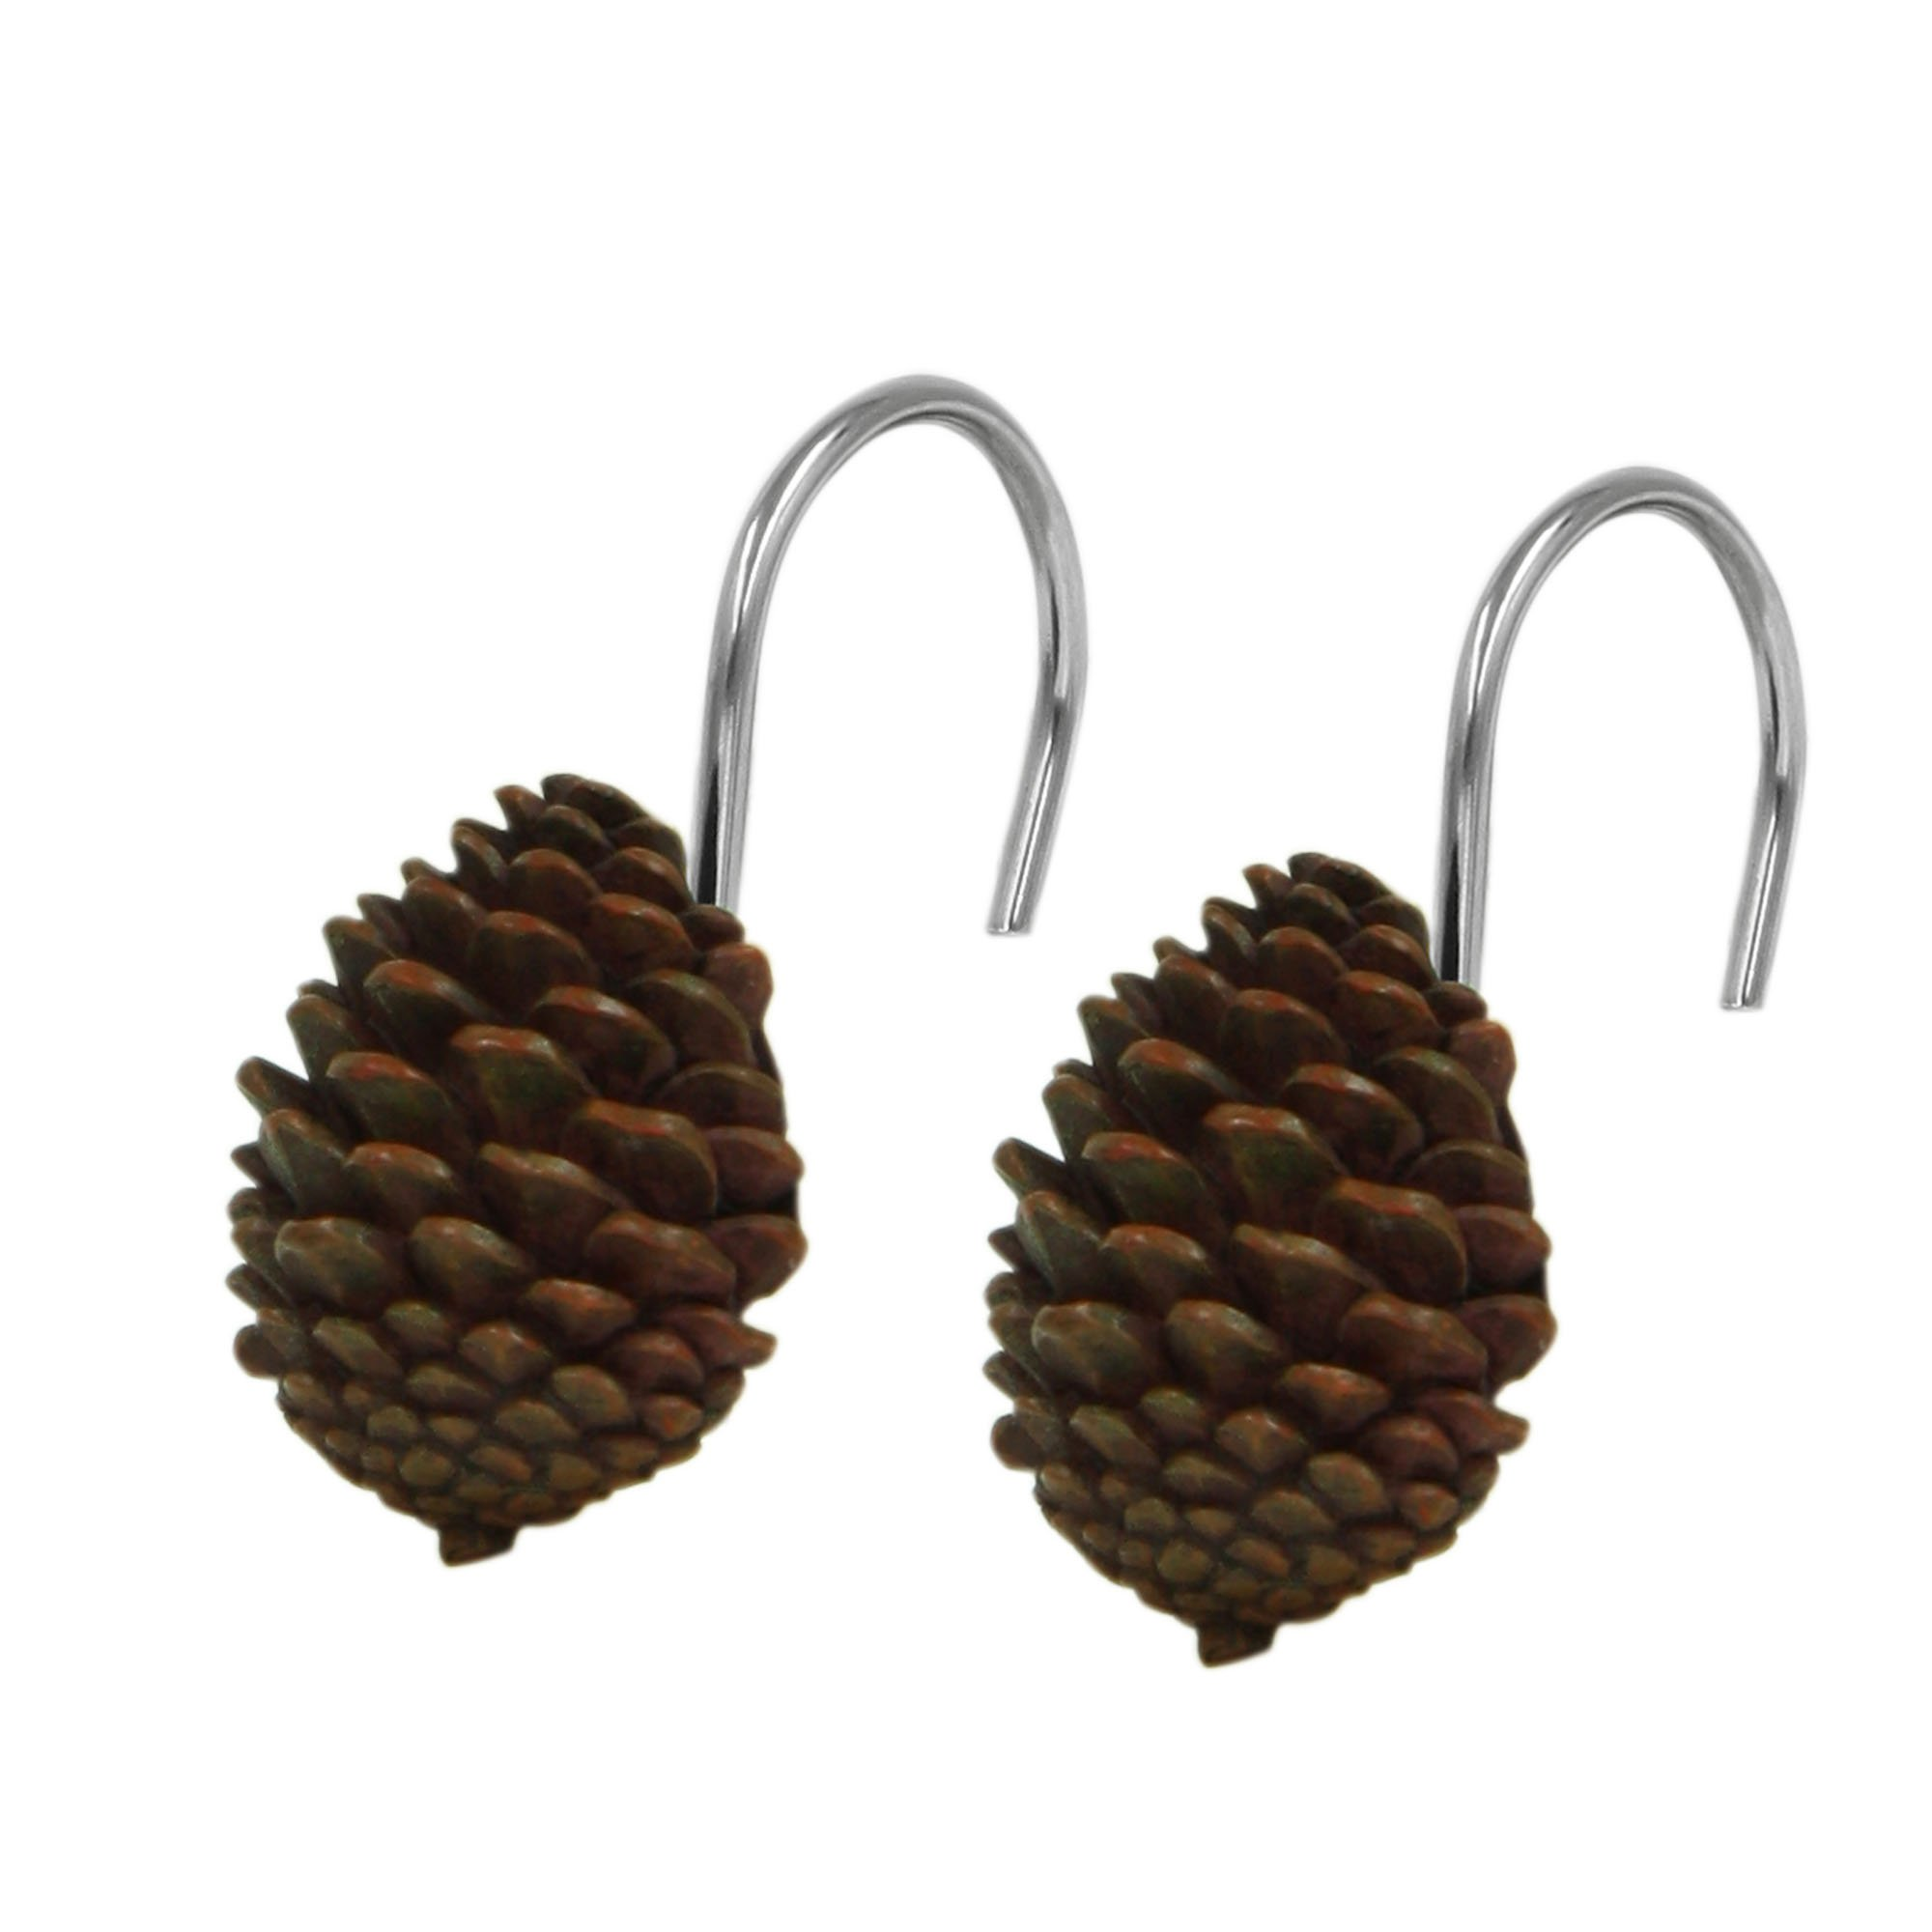 Bacova Guild Pine Cone Silhouettes Shower Curtain Hooks Designed by Cynthia Coulterild